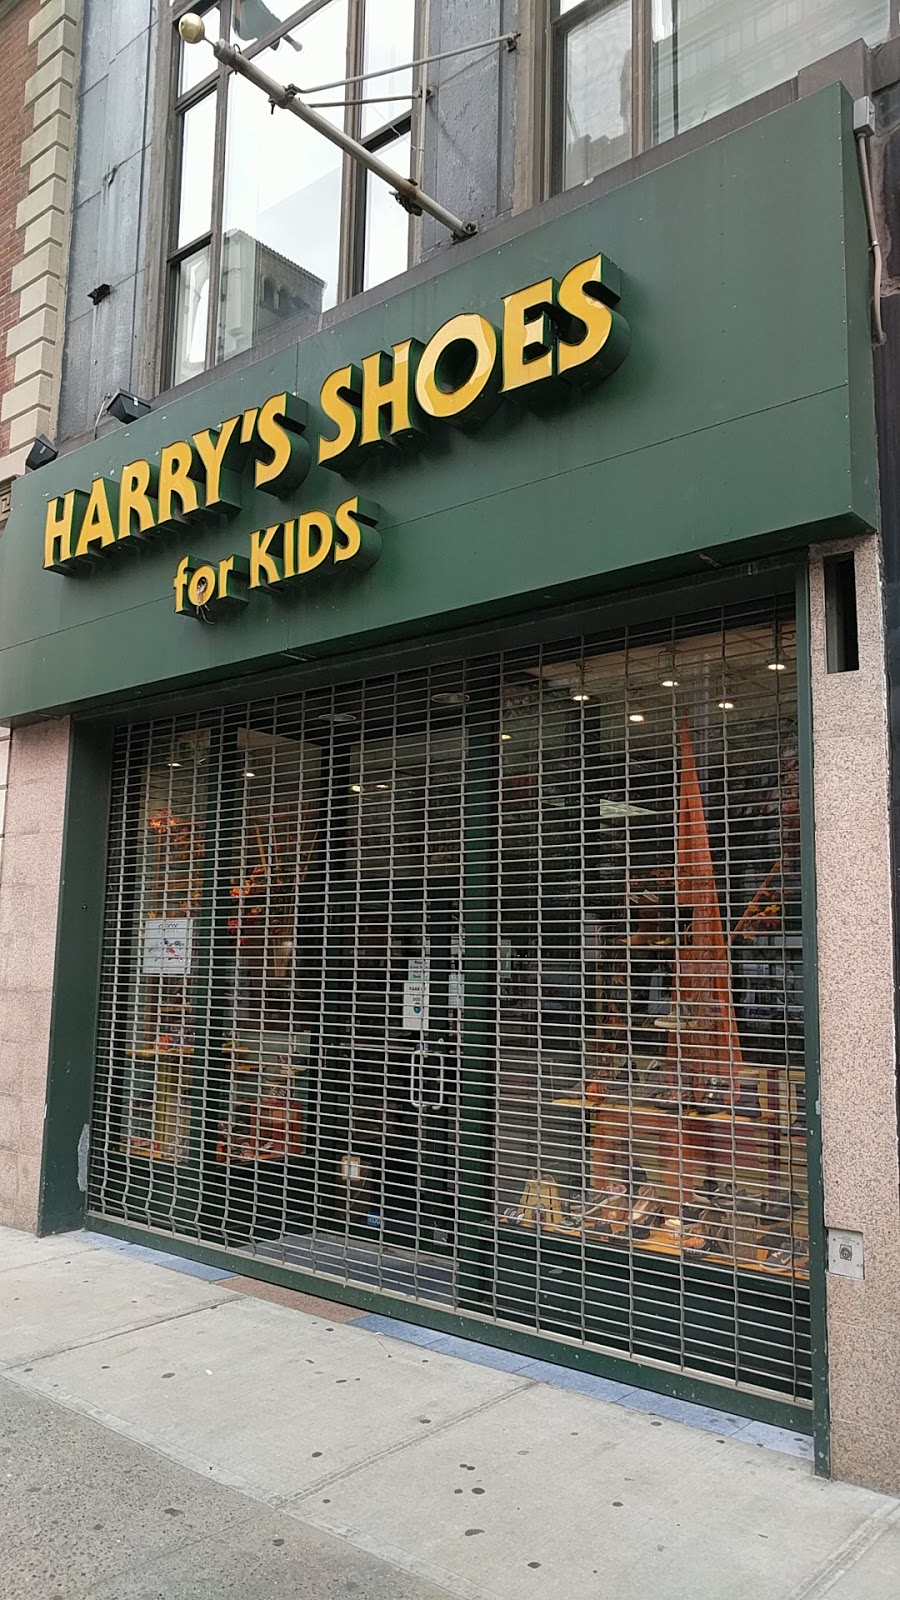 Harrys Shoes for Kids - shoe store  | Photo 10 of 10 | Address: 2315 Broadway, New York, NY 10024, USA | Phone: (855) 642-7797